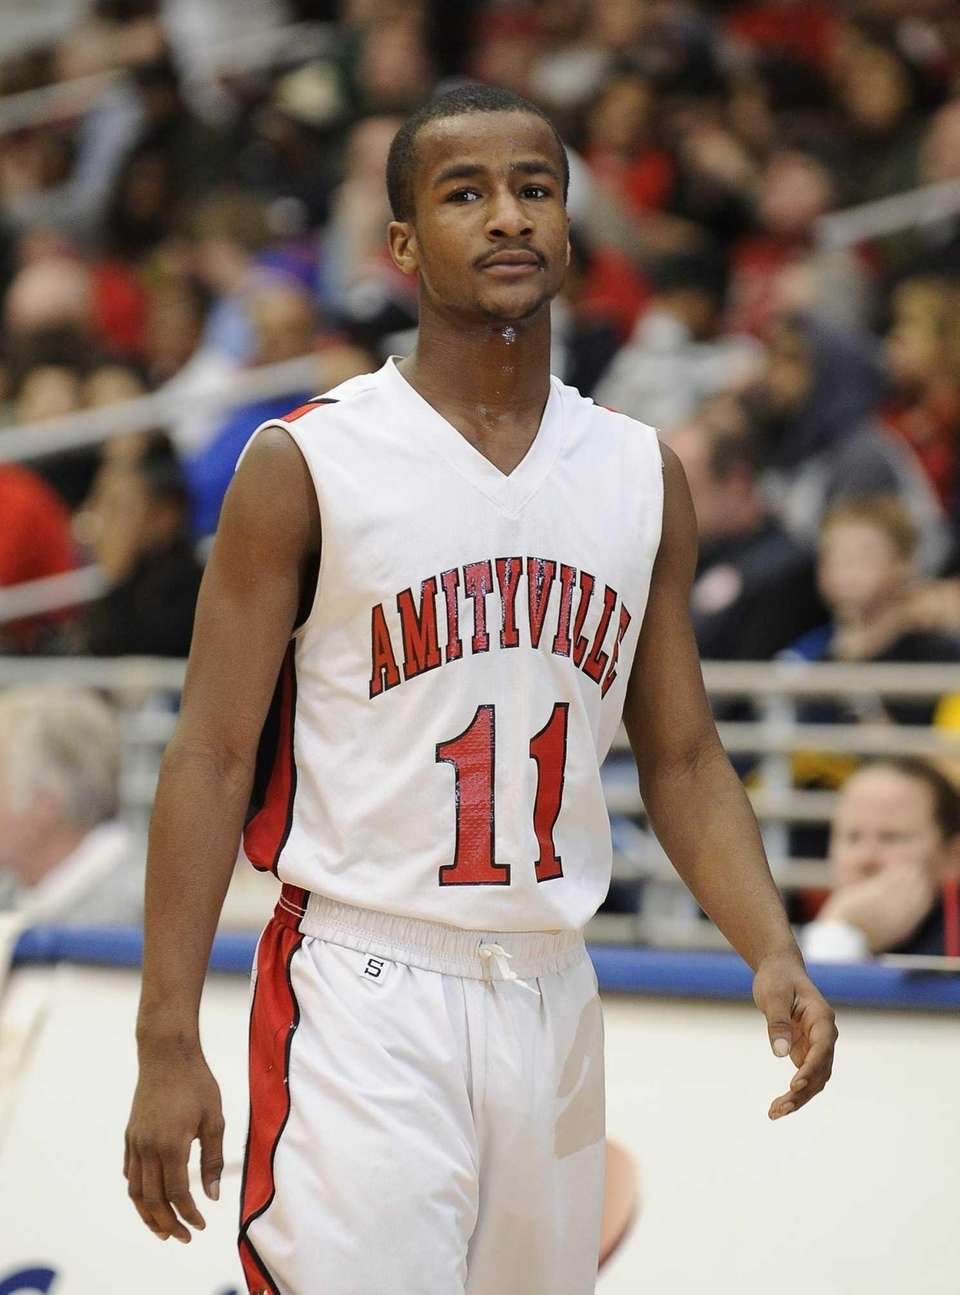 Amityville's Sean Walters on the court during action